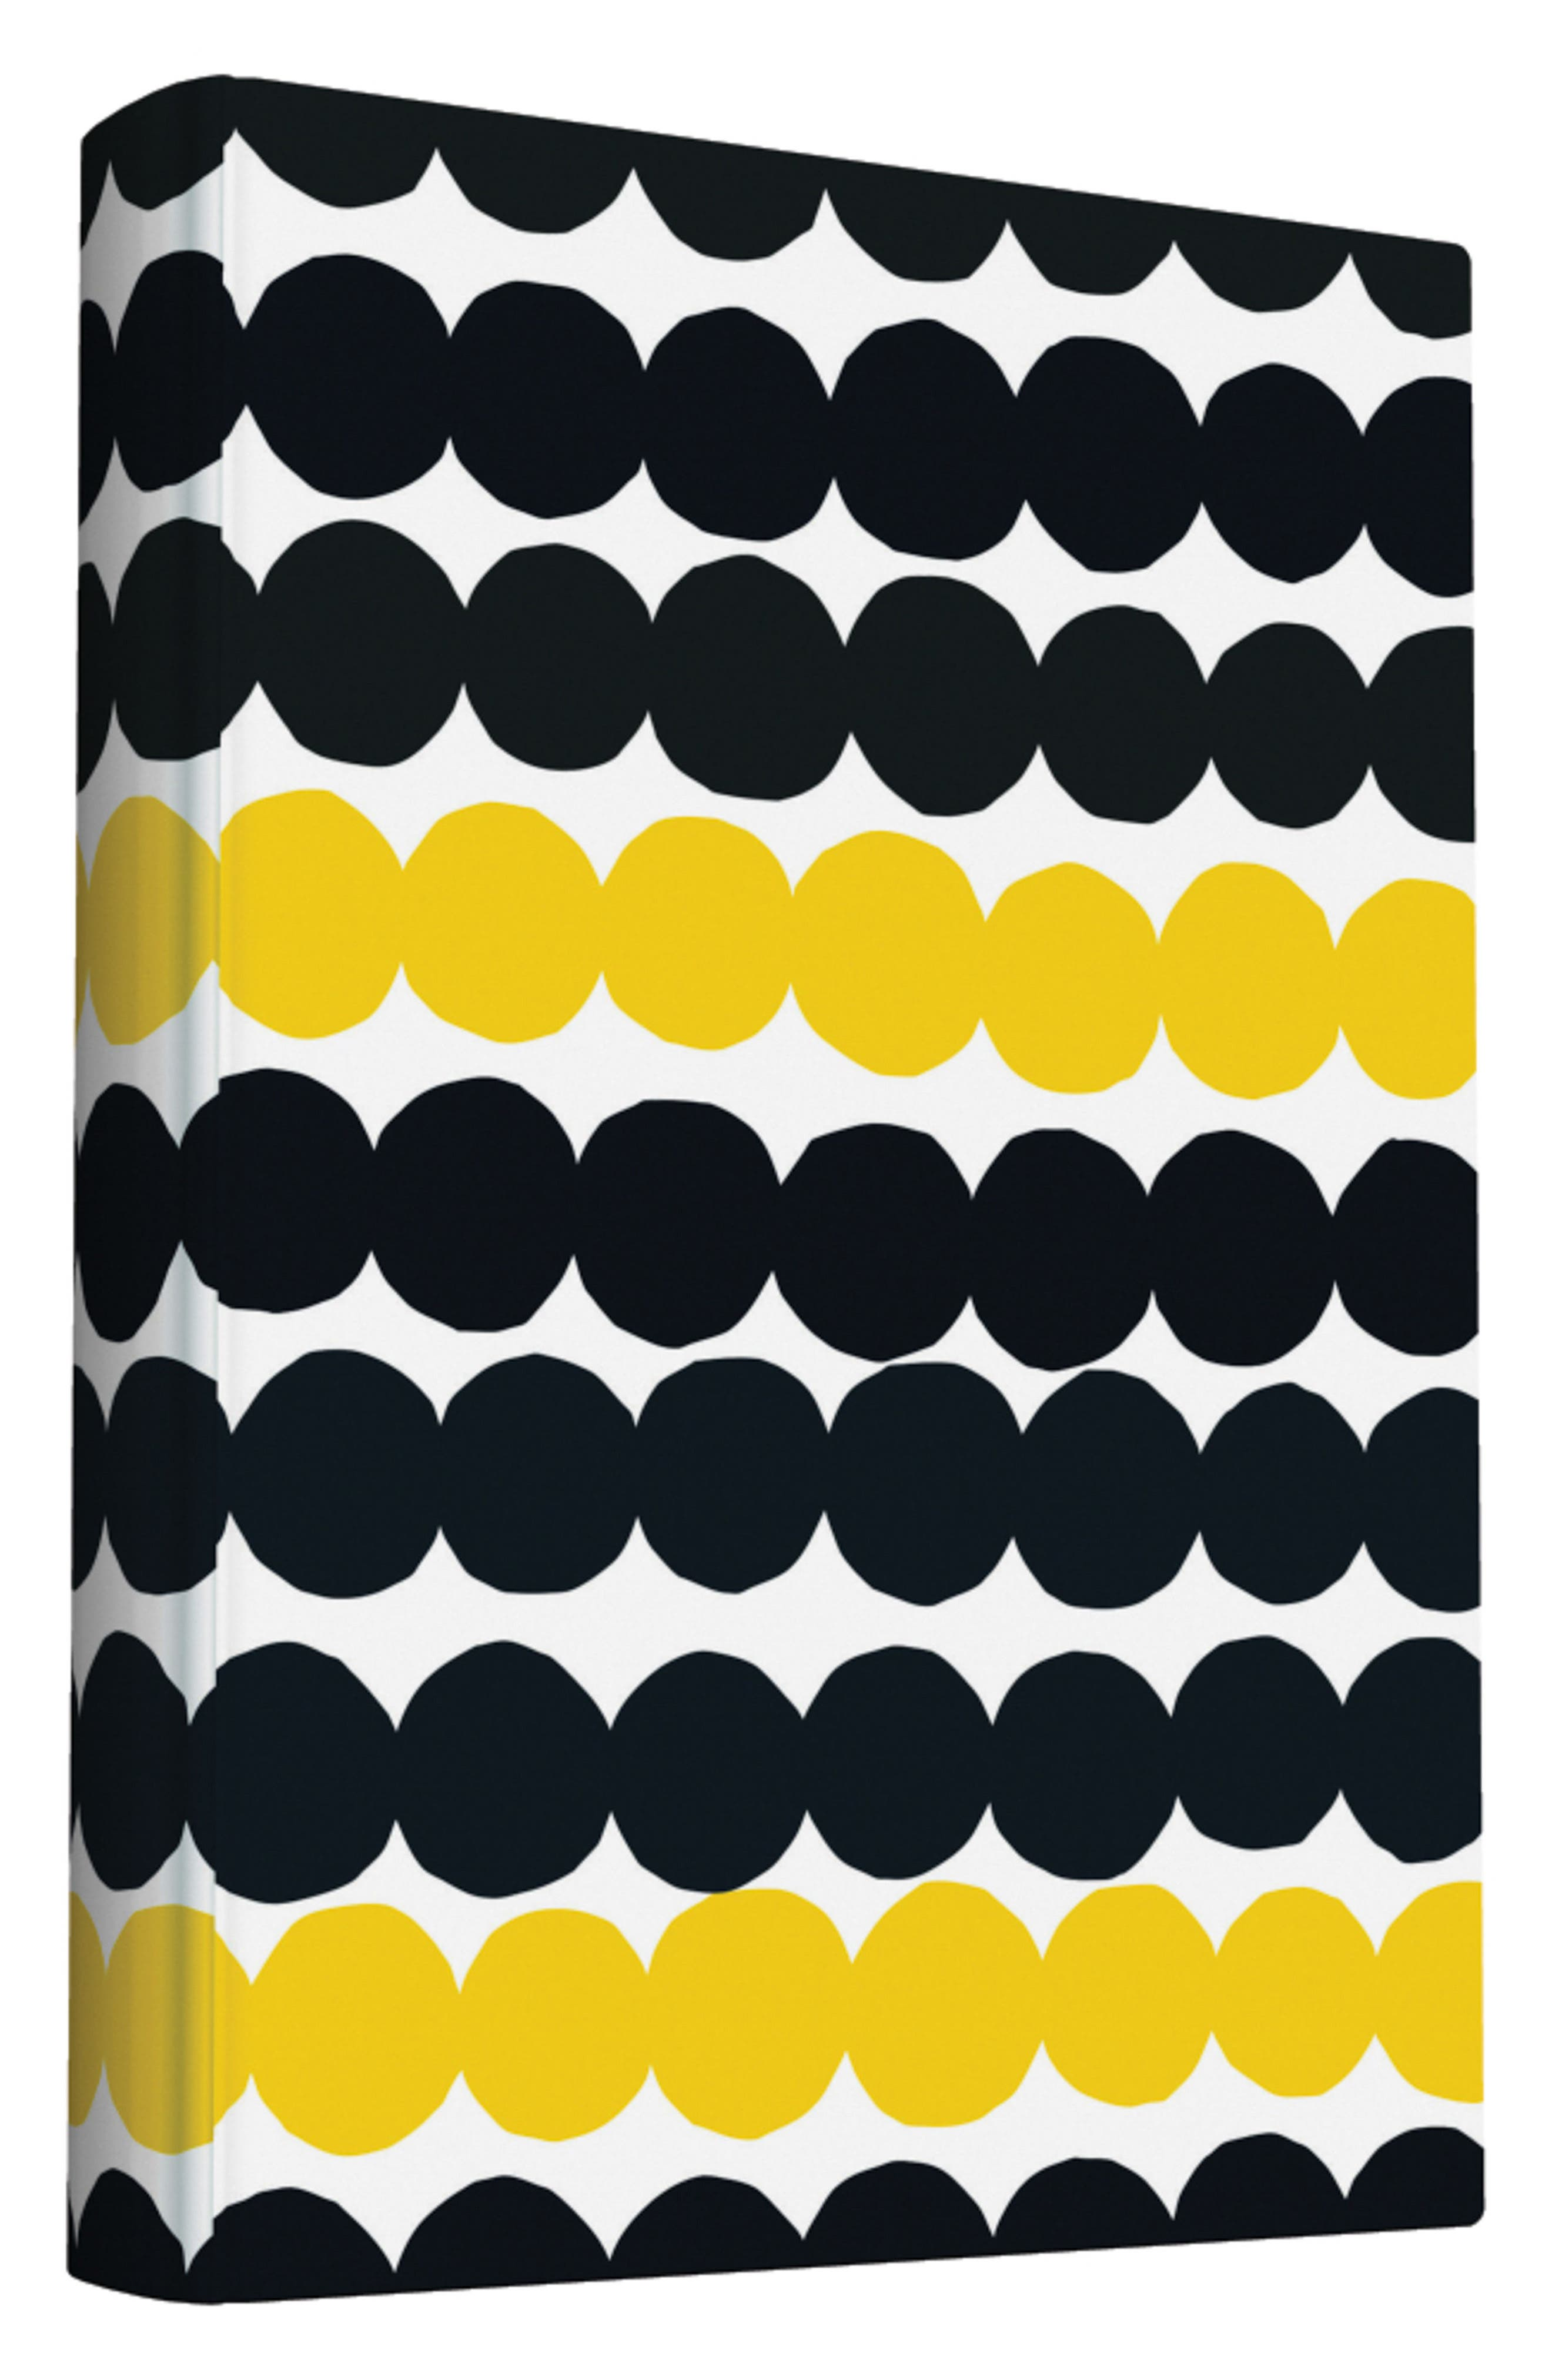 Marimekko Fabric Wrapped Journal,                             Alternate thumbnail 2, color,                             700